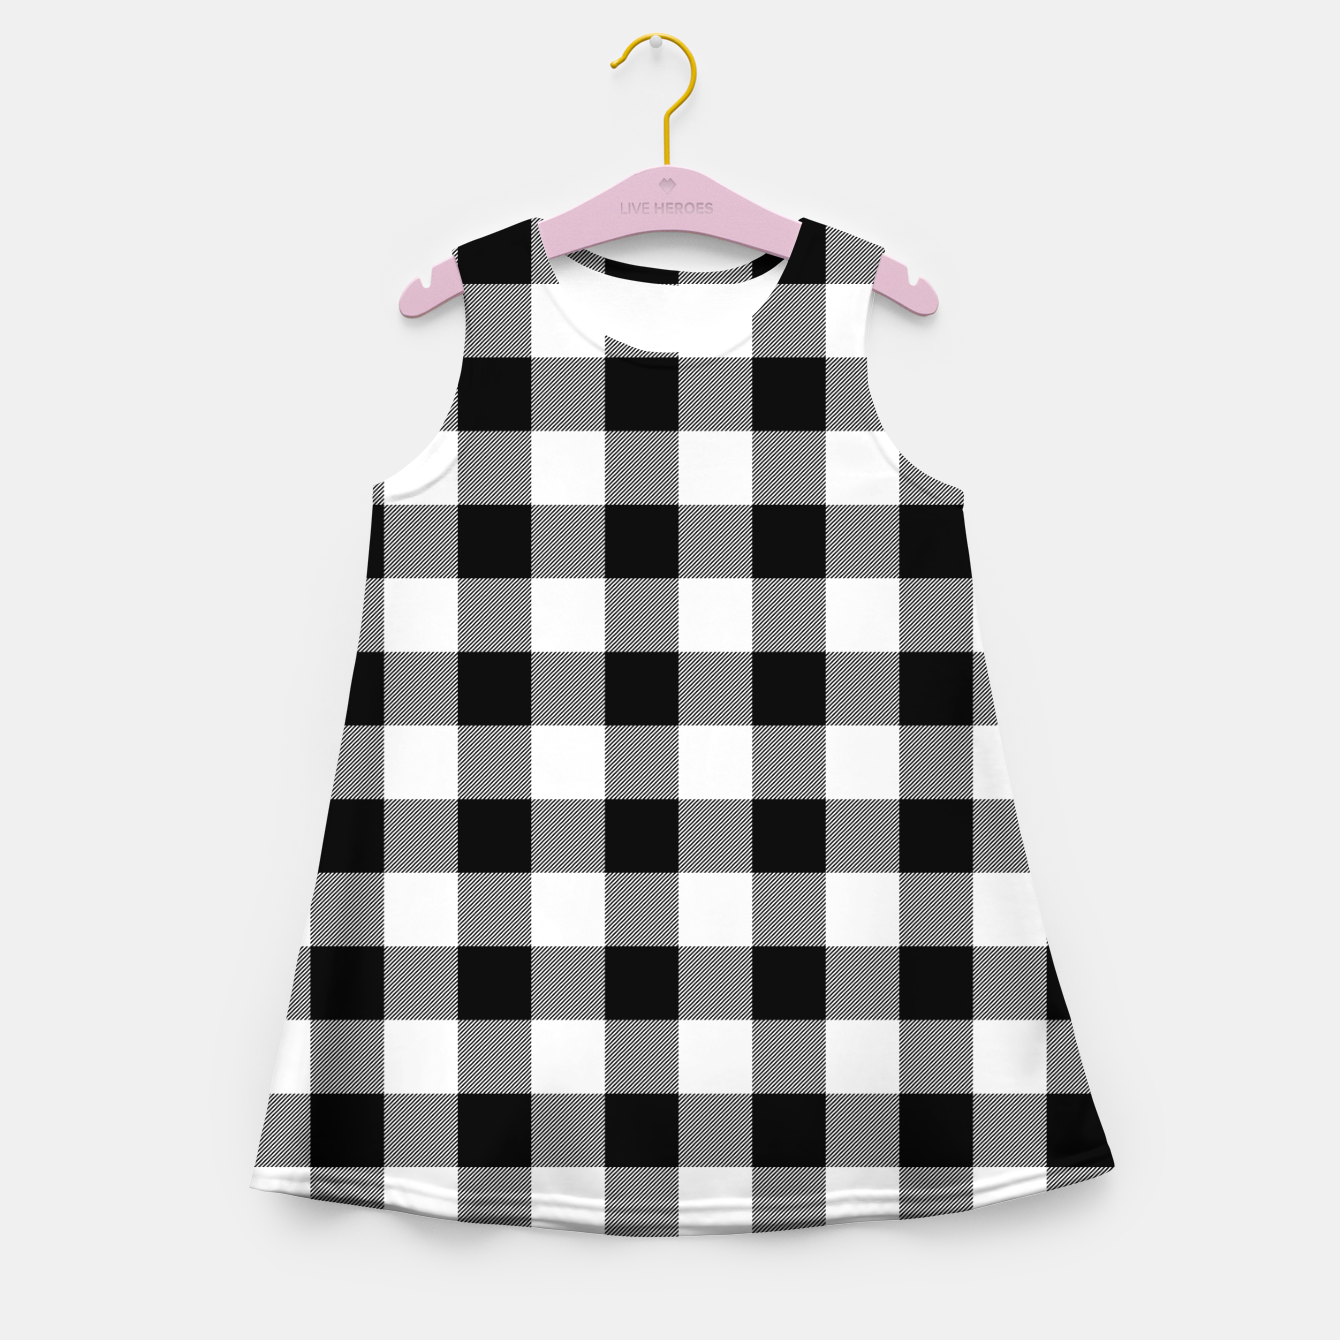 Imagen de Large Size Black and White Western Cowboy Buffalo Check Gingham Girl's summer dress - Live Heroes